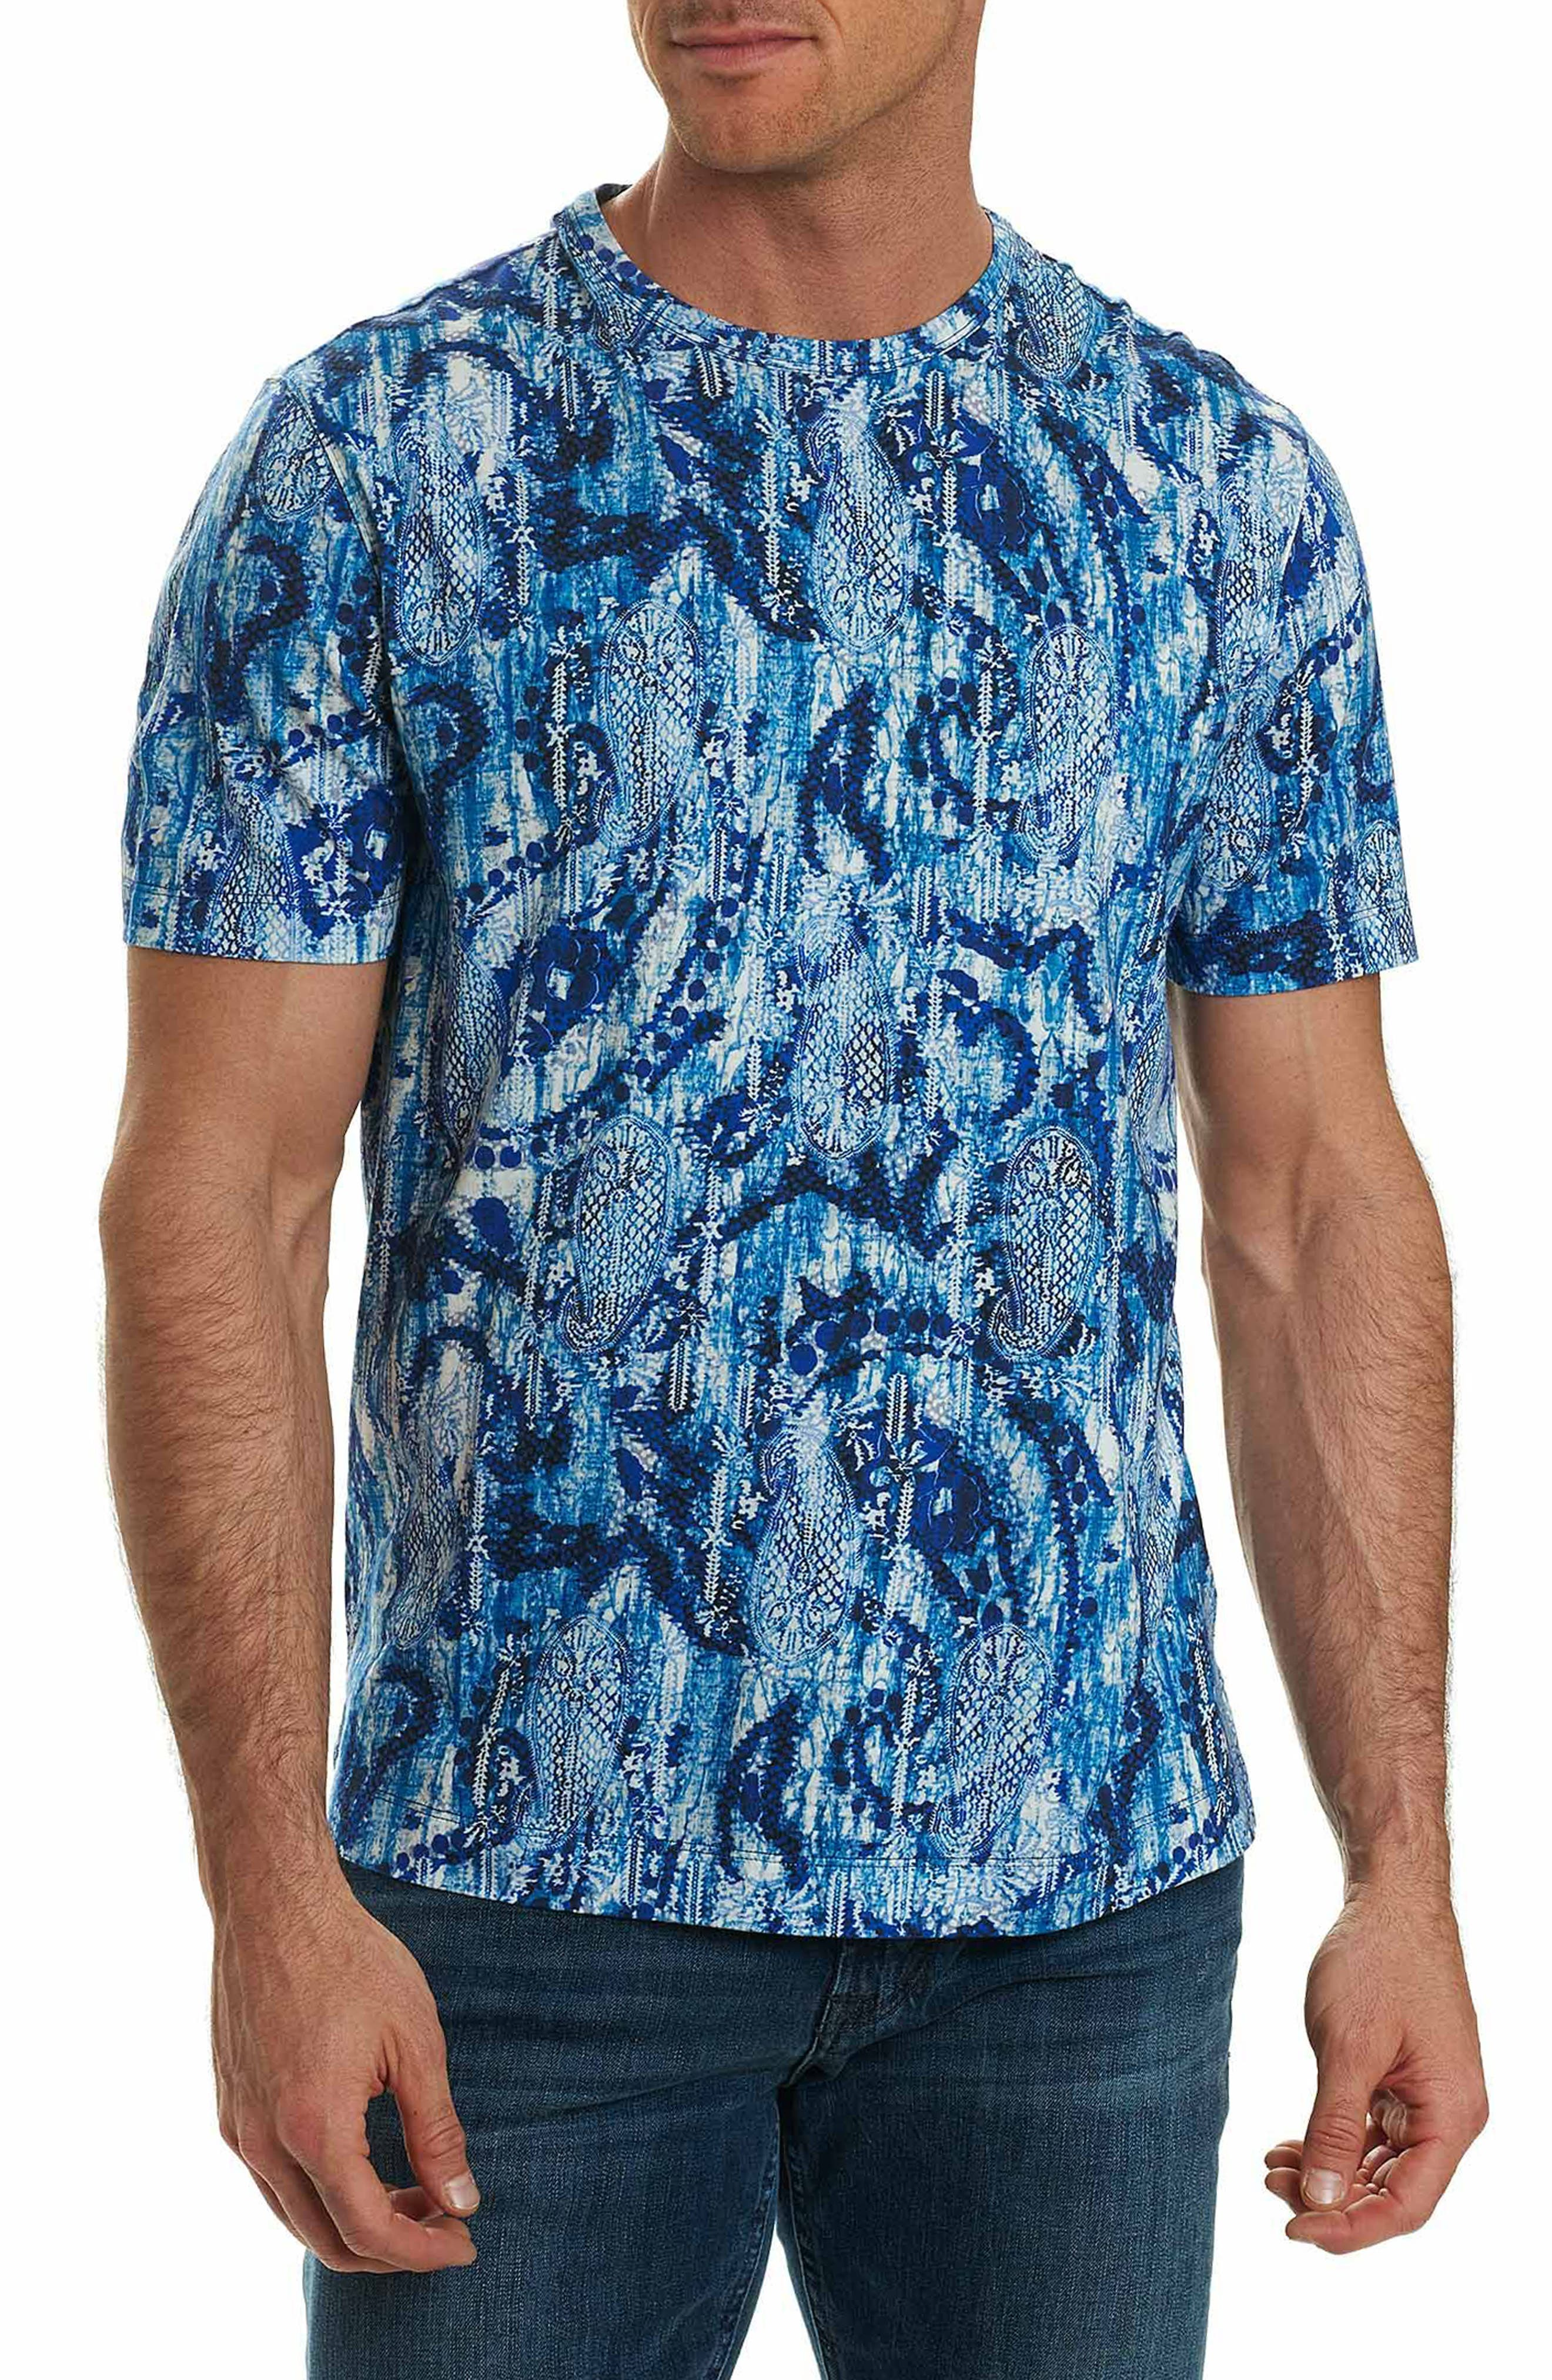 Robert Graham Islets Knit T-Shirt